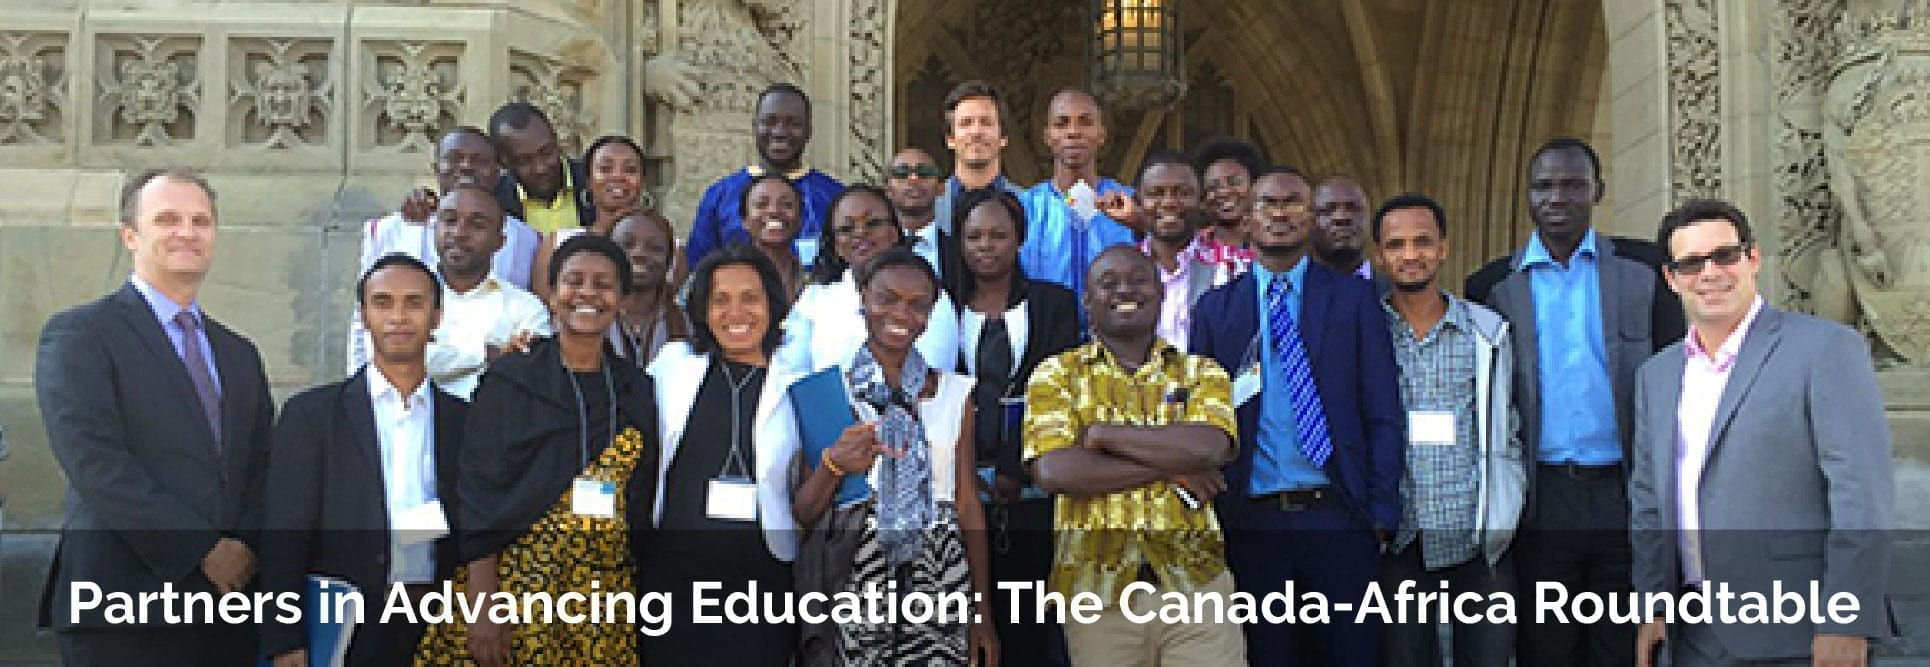 Canada-Africa Roundtable